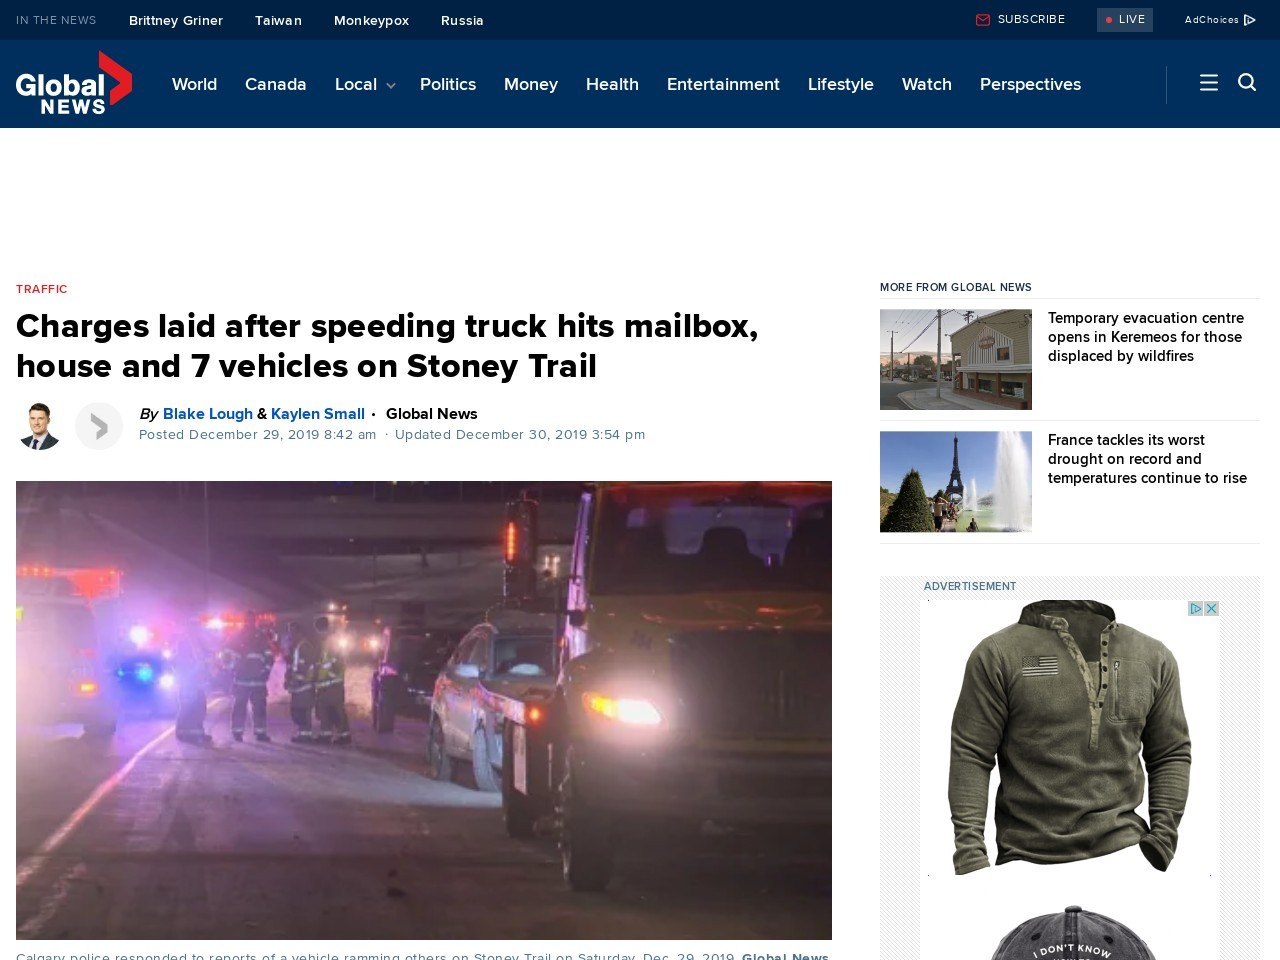 Multiple vehicles struck by speeding truck on Stoney Trail, police investigating